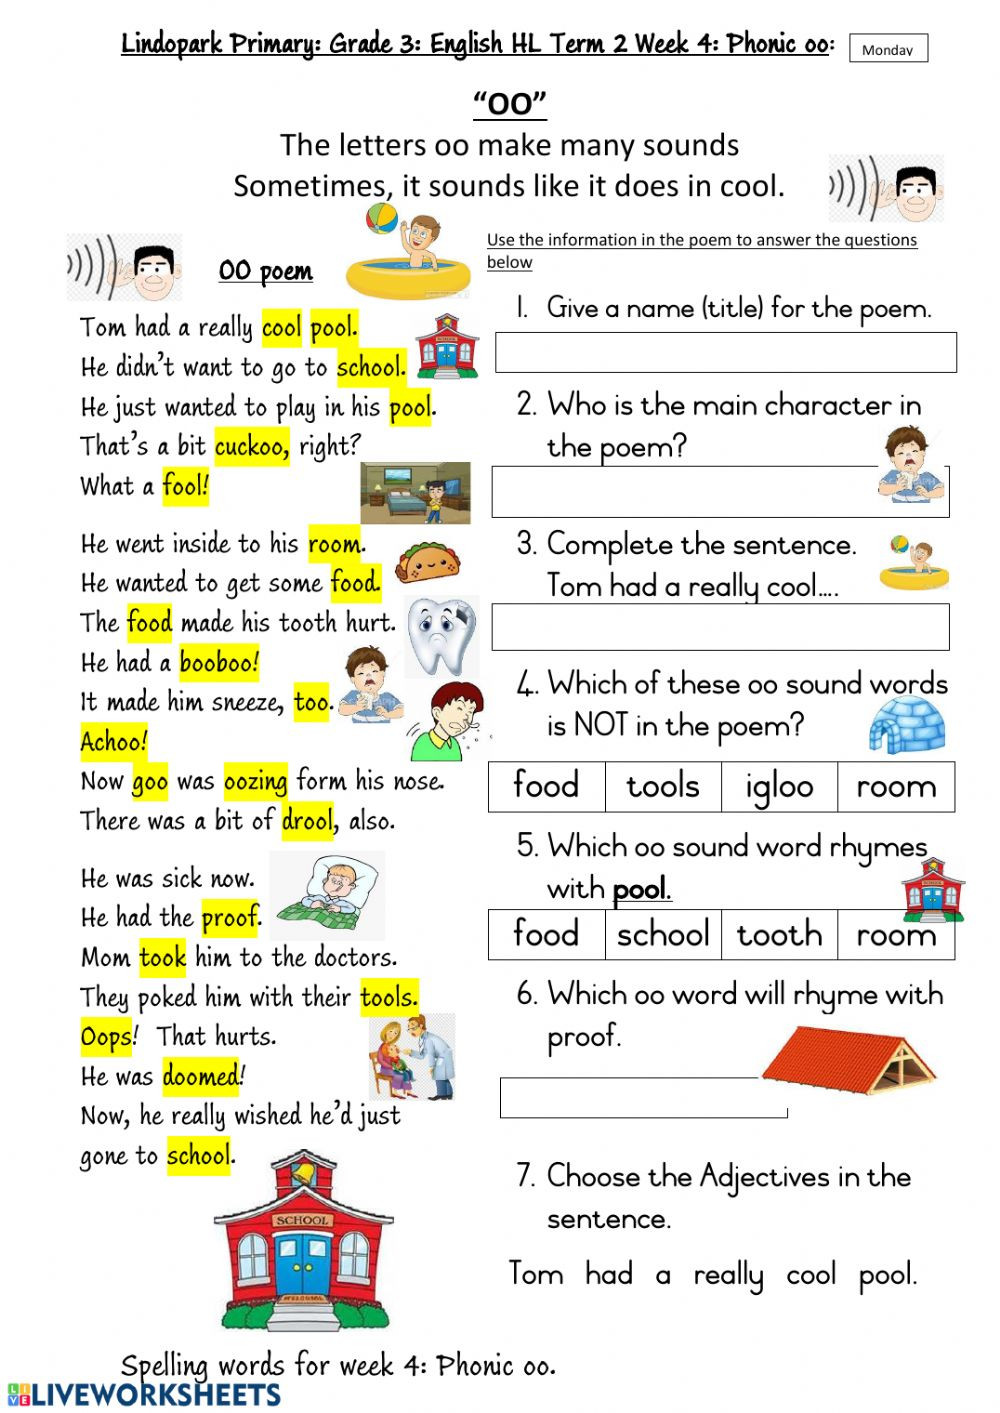 Phonics Worksheets Grade 3 Grade 3 Hl English Term 2 Week 4 Phonic Oo Worksheet 1